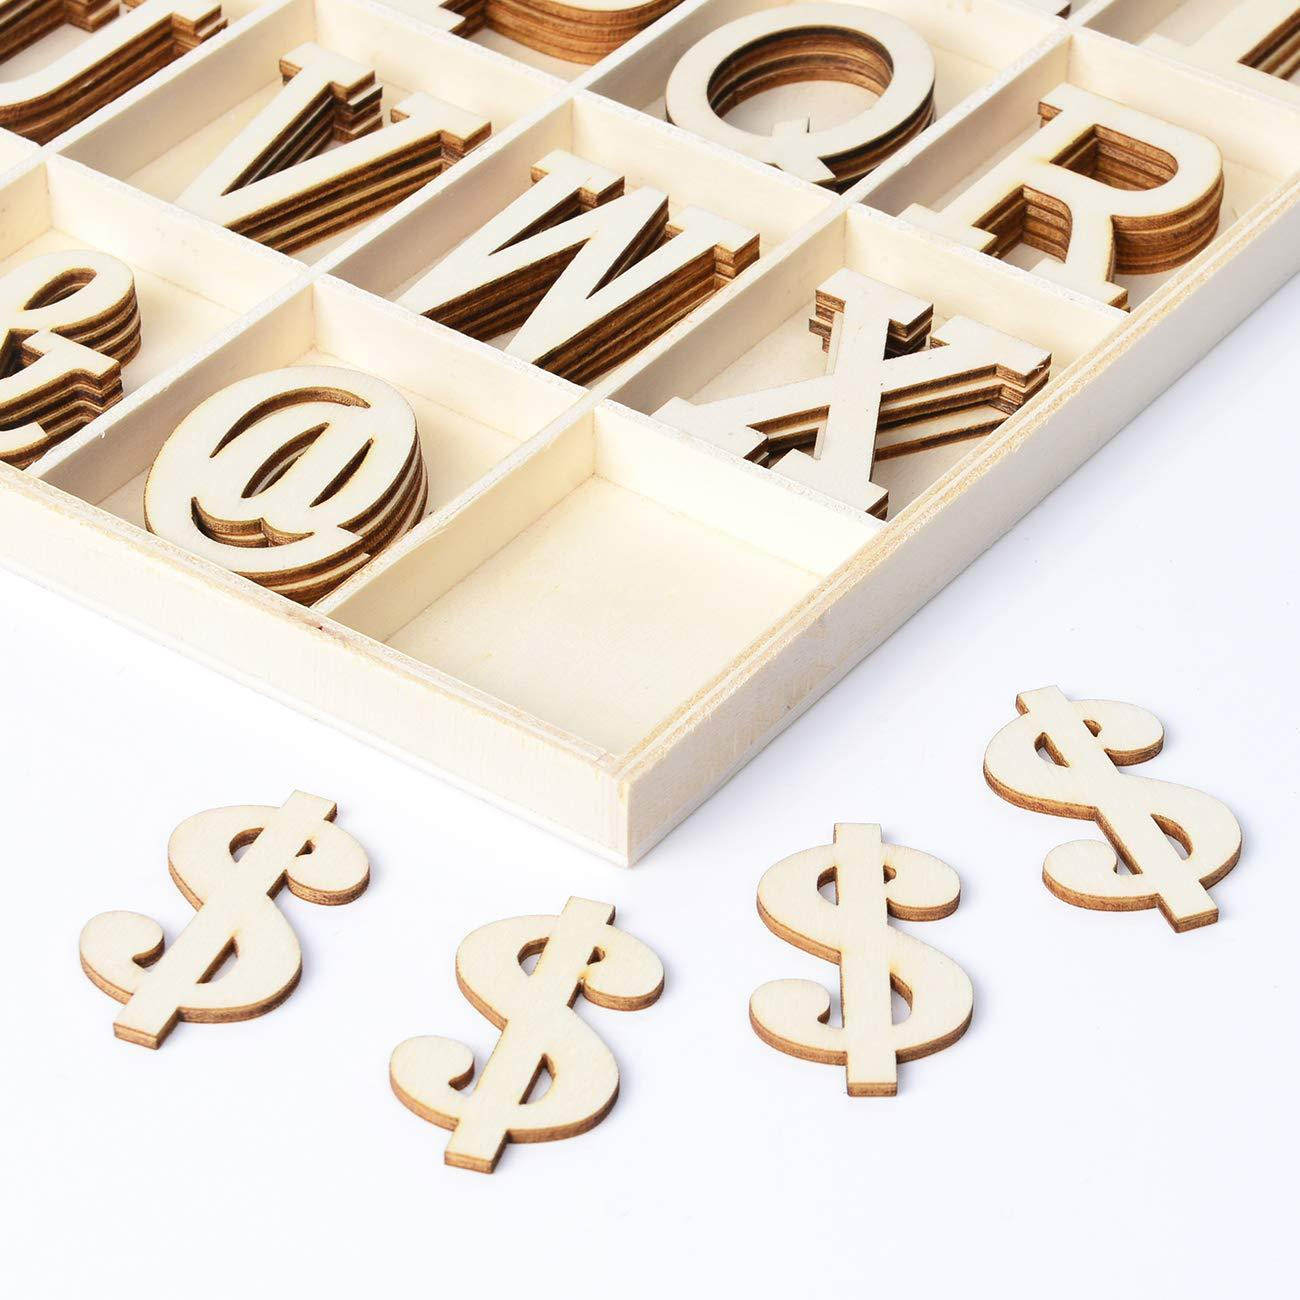 Wooden Letters Wooden Alphabets Craft